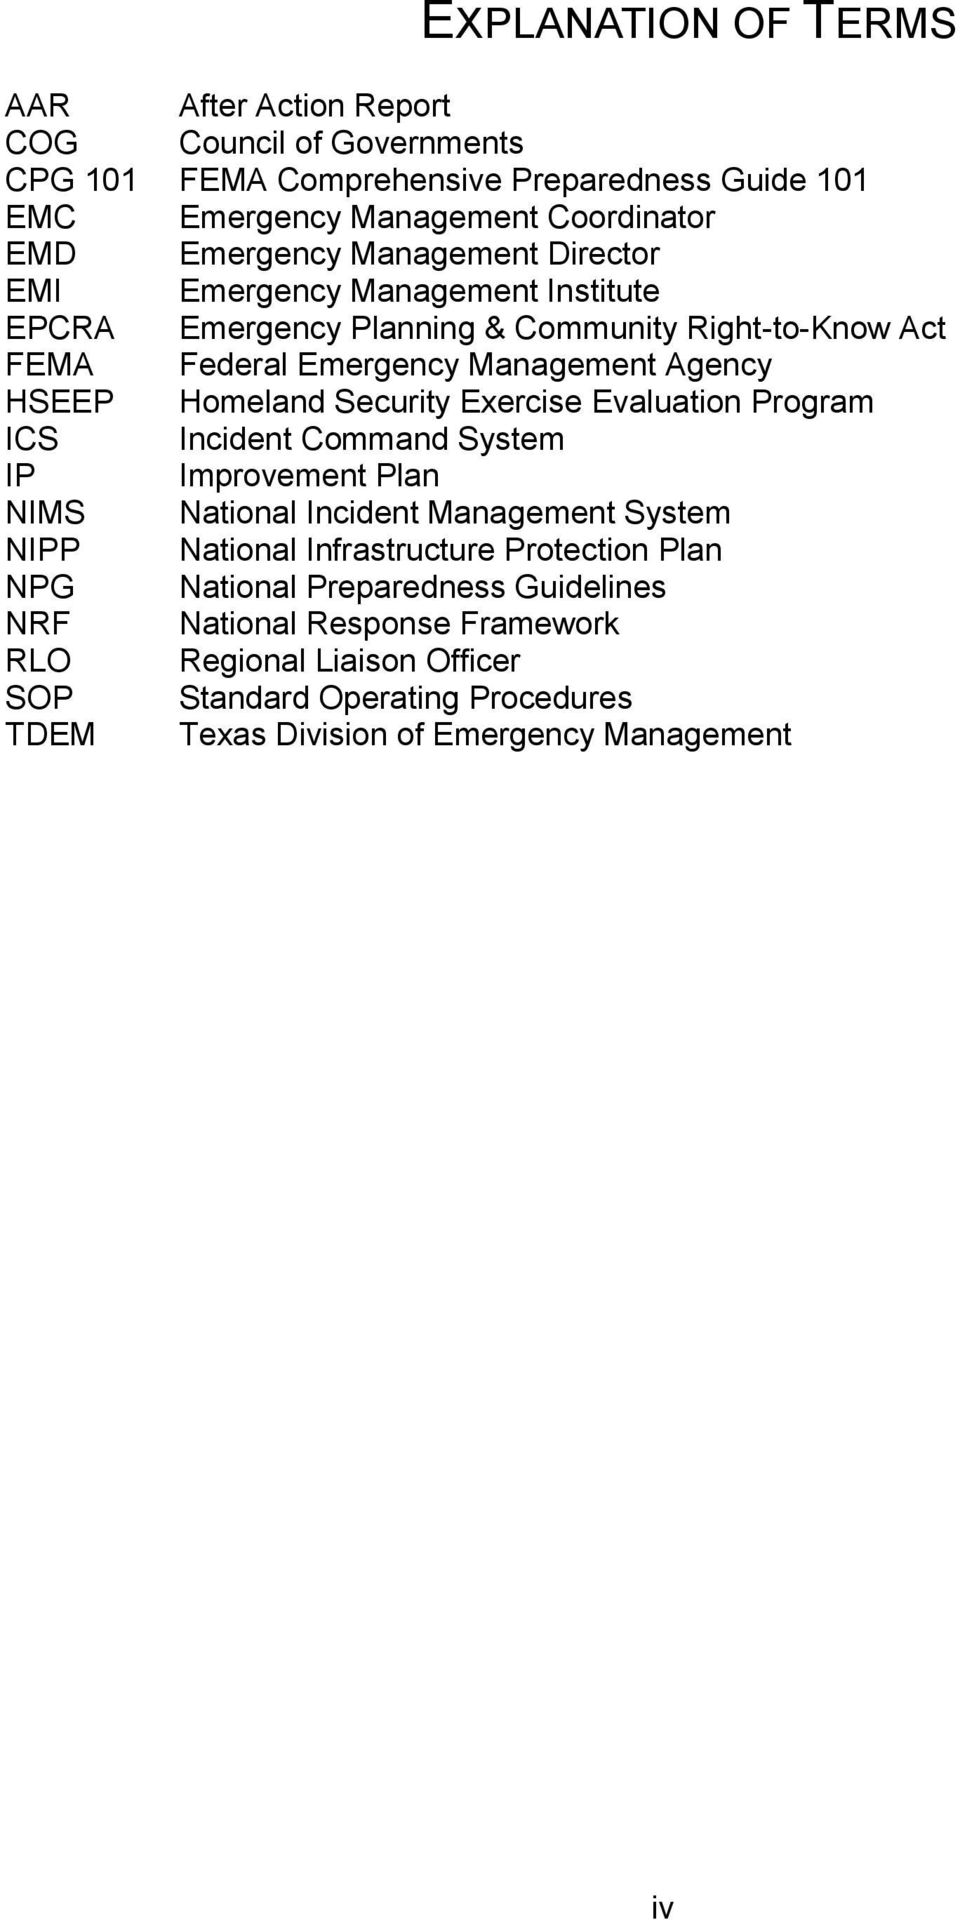 Security Exercise Evaluation Program ICS Incident Command System IP Improvement Plan NIMS National Incident Management System NIPP National Infrastructure Protection Plan